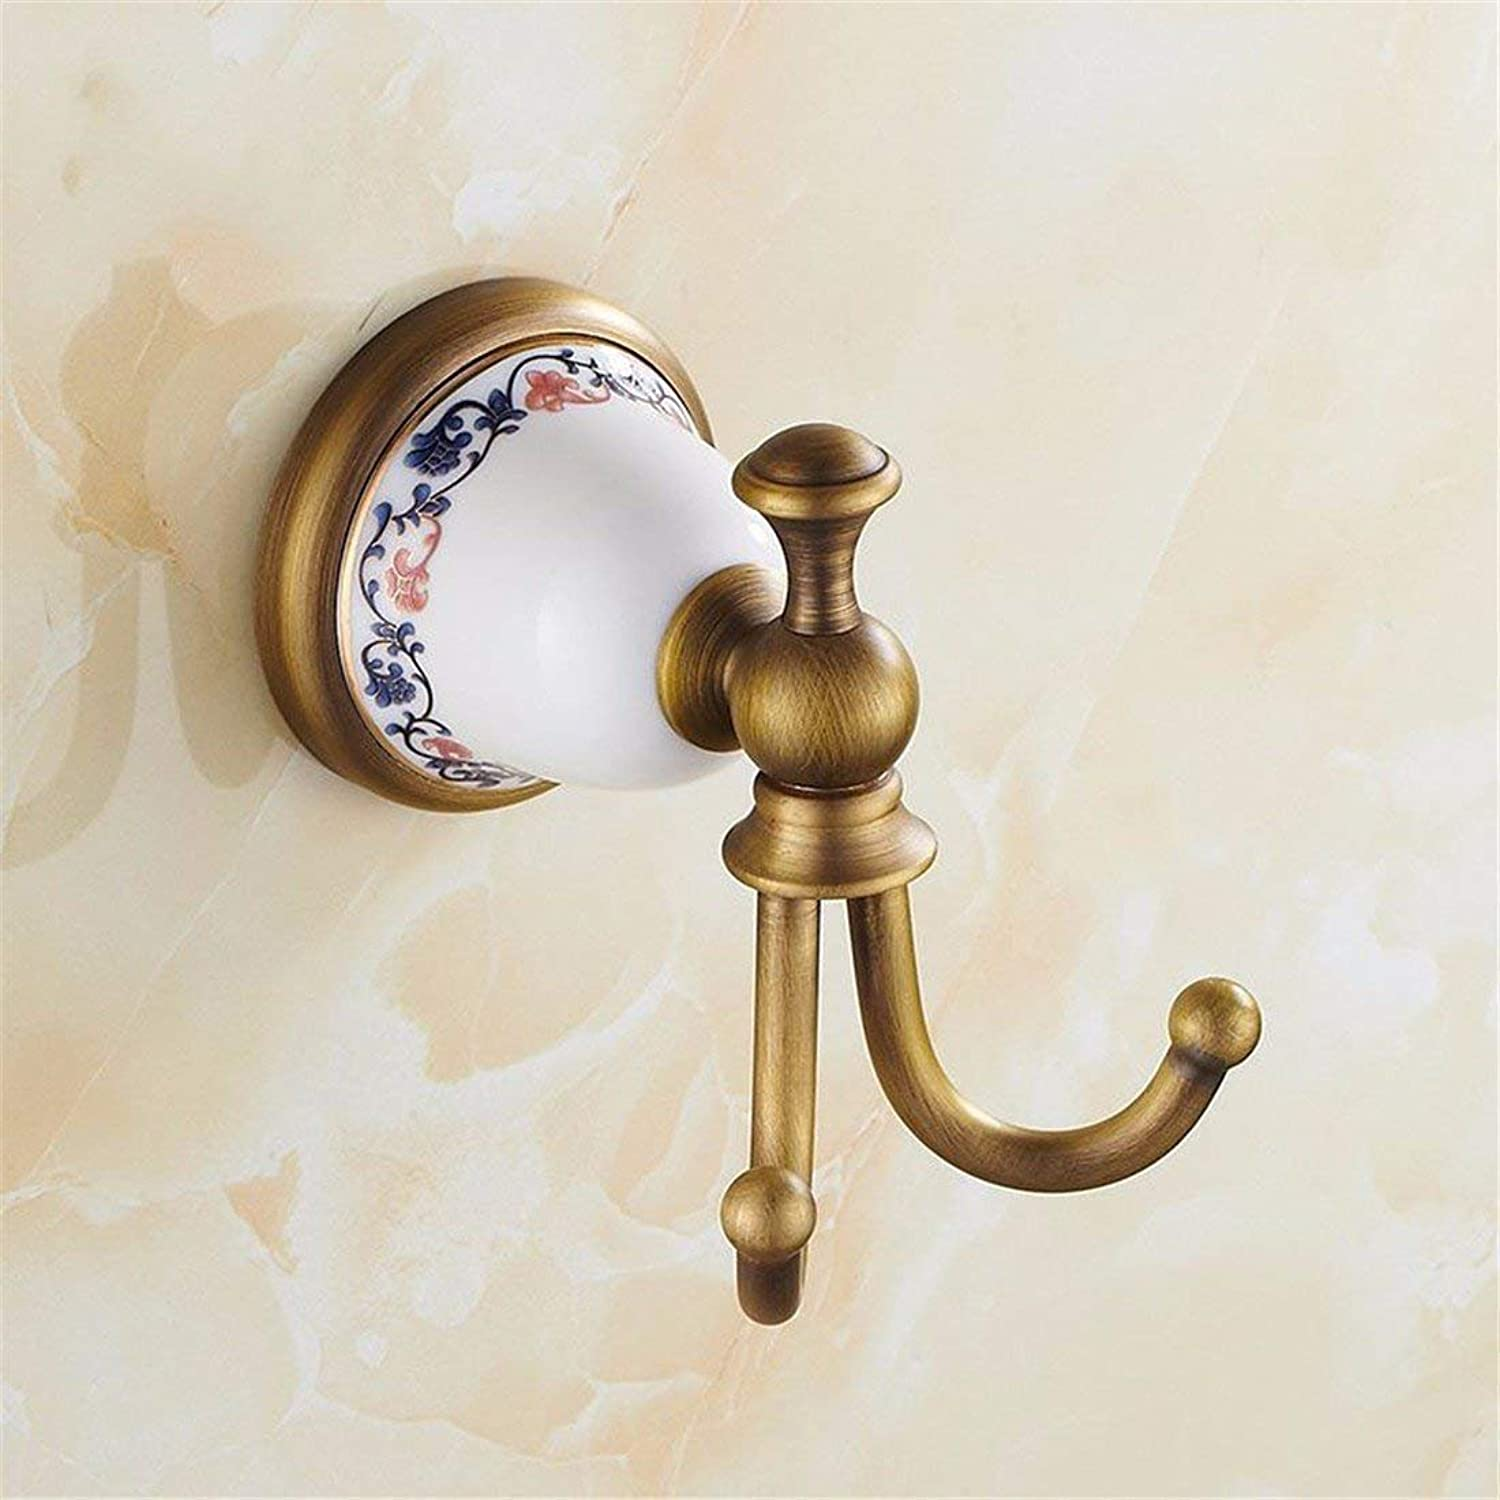 European Style of Copper of Full Base Archaize Dry-Towels,Accessories of Room of Ceramic a Hook to Clothing